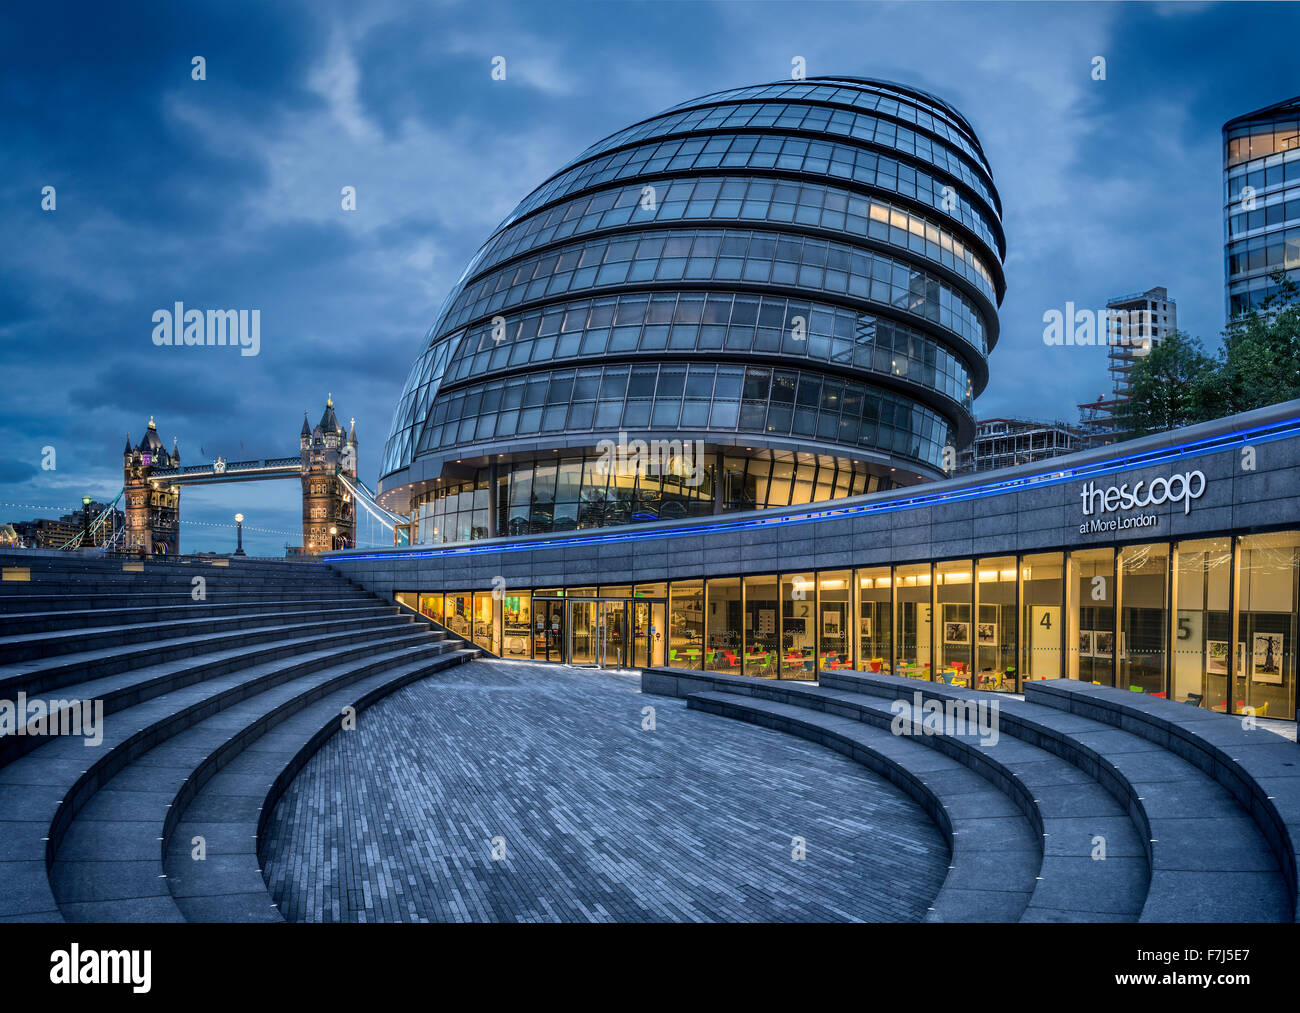 City Hall, London, England, UK - Stock Image